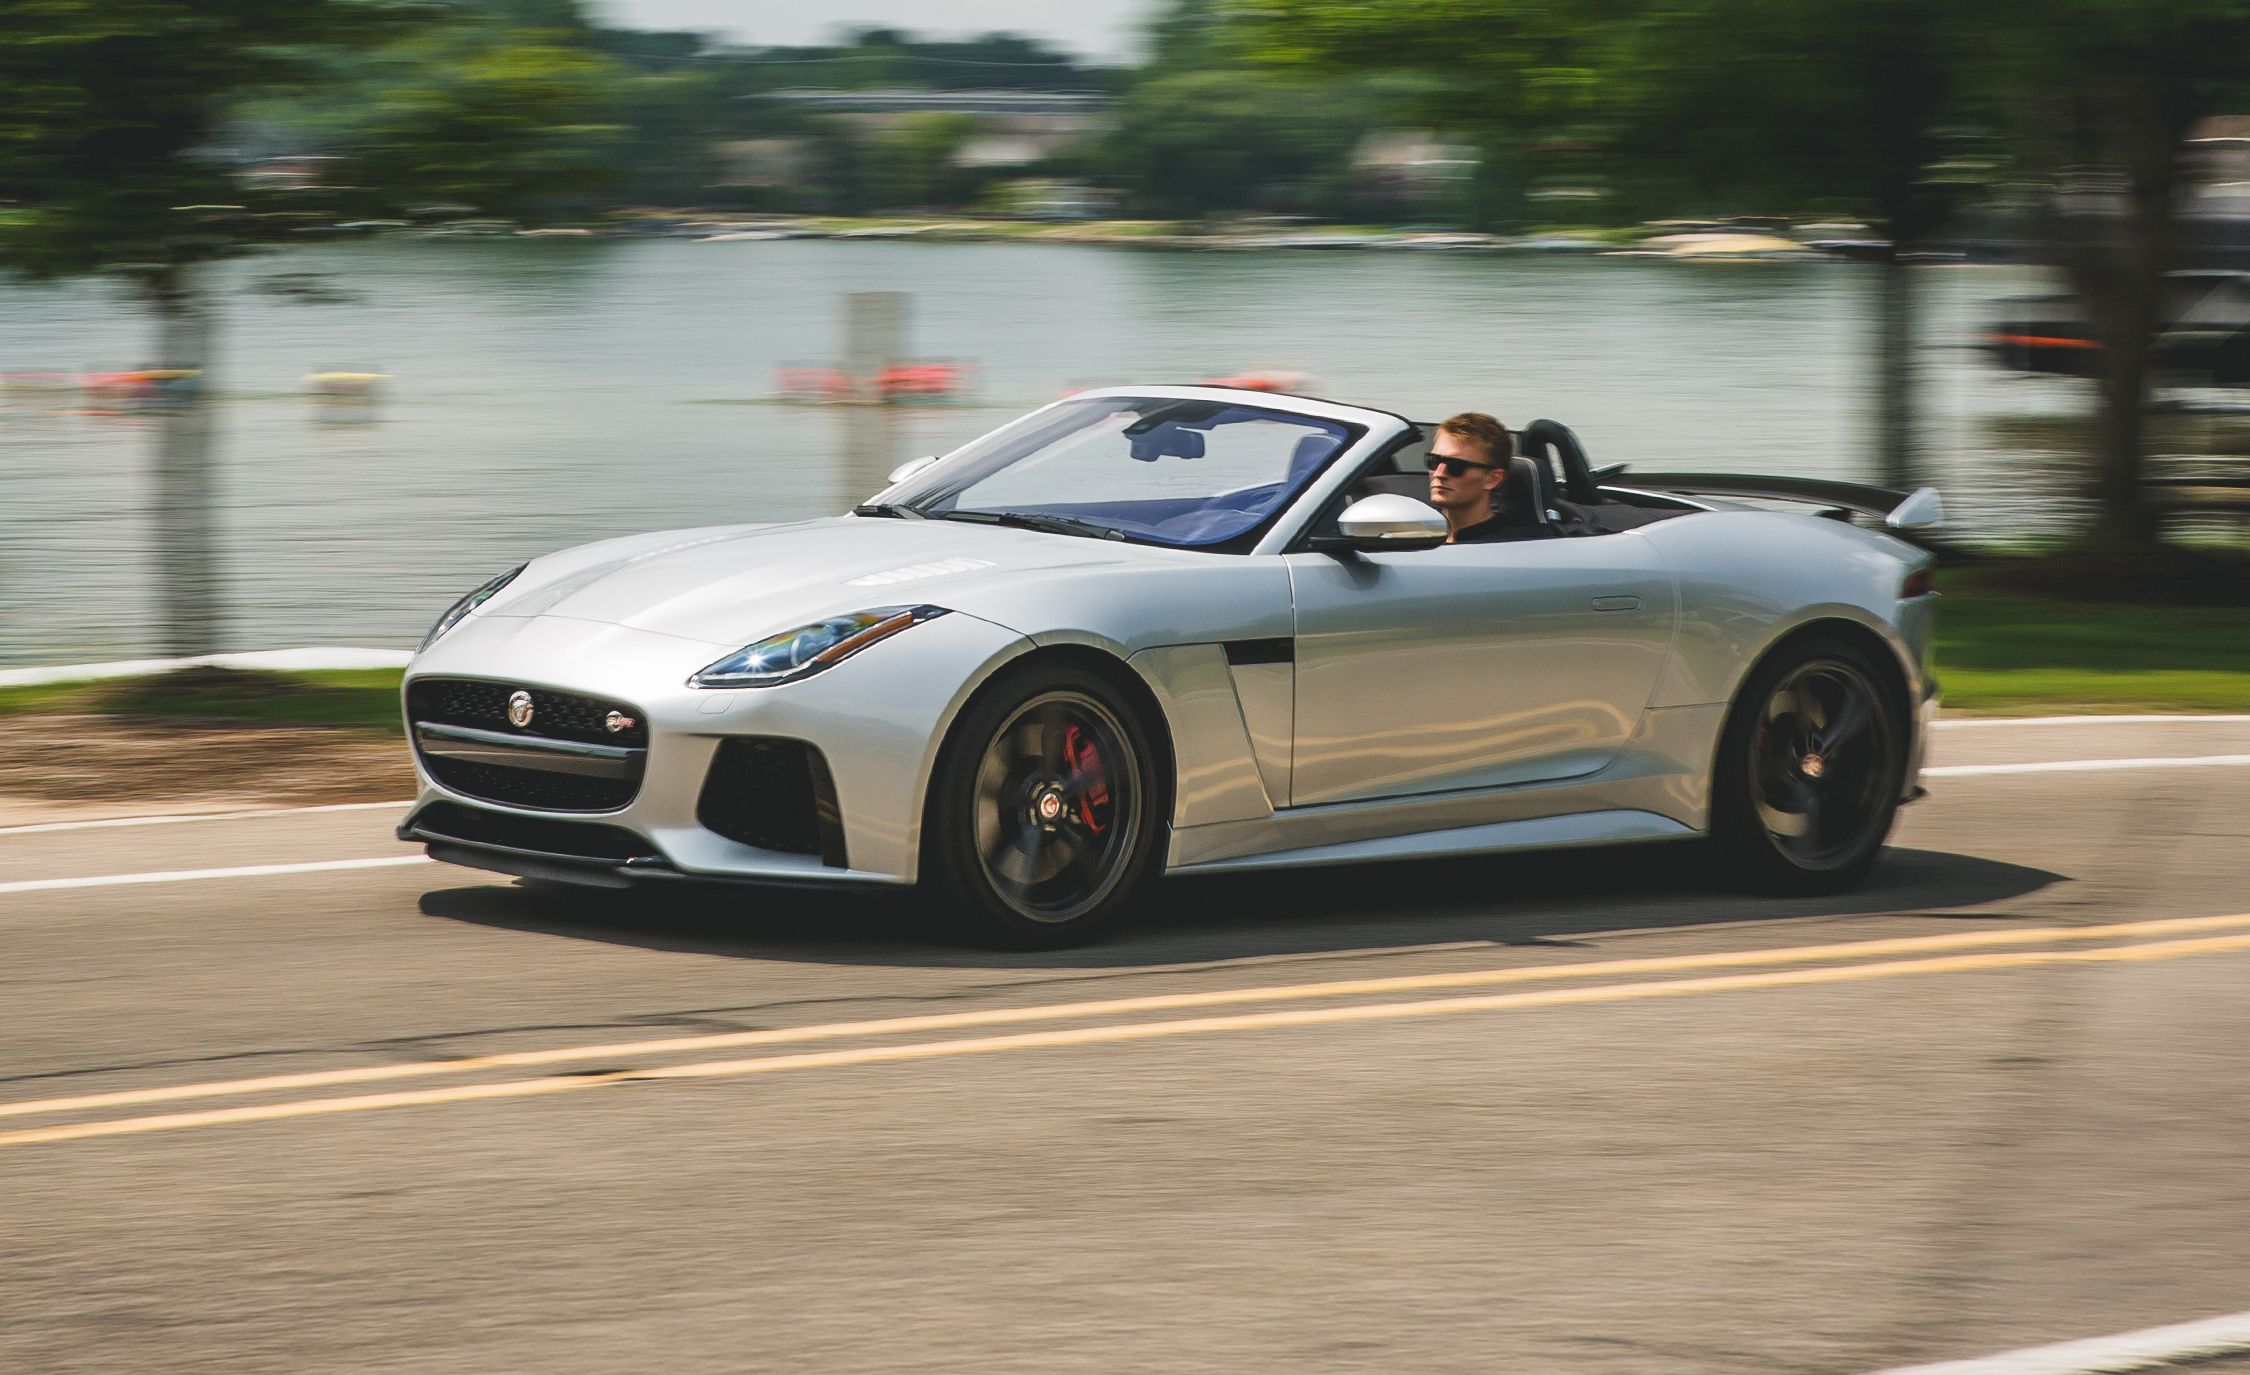 2017 Jaguar F-type SVR Convertible